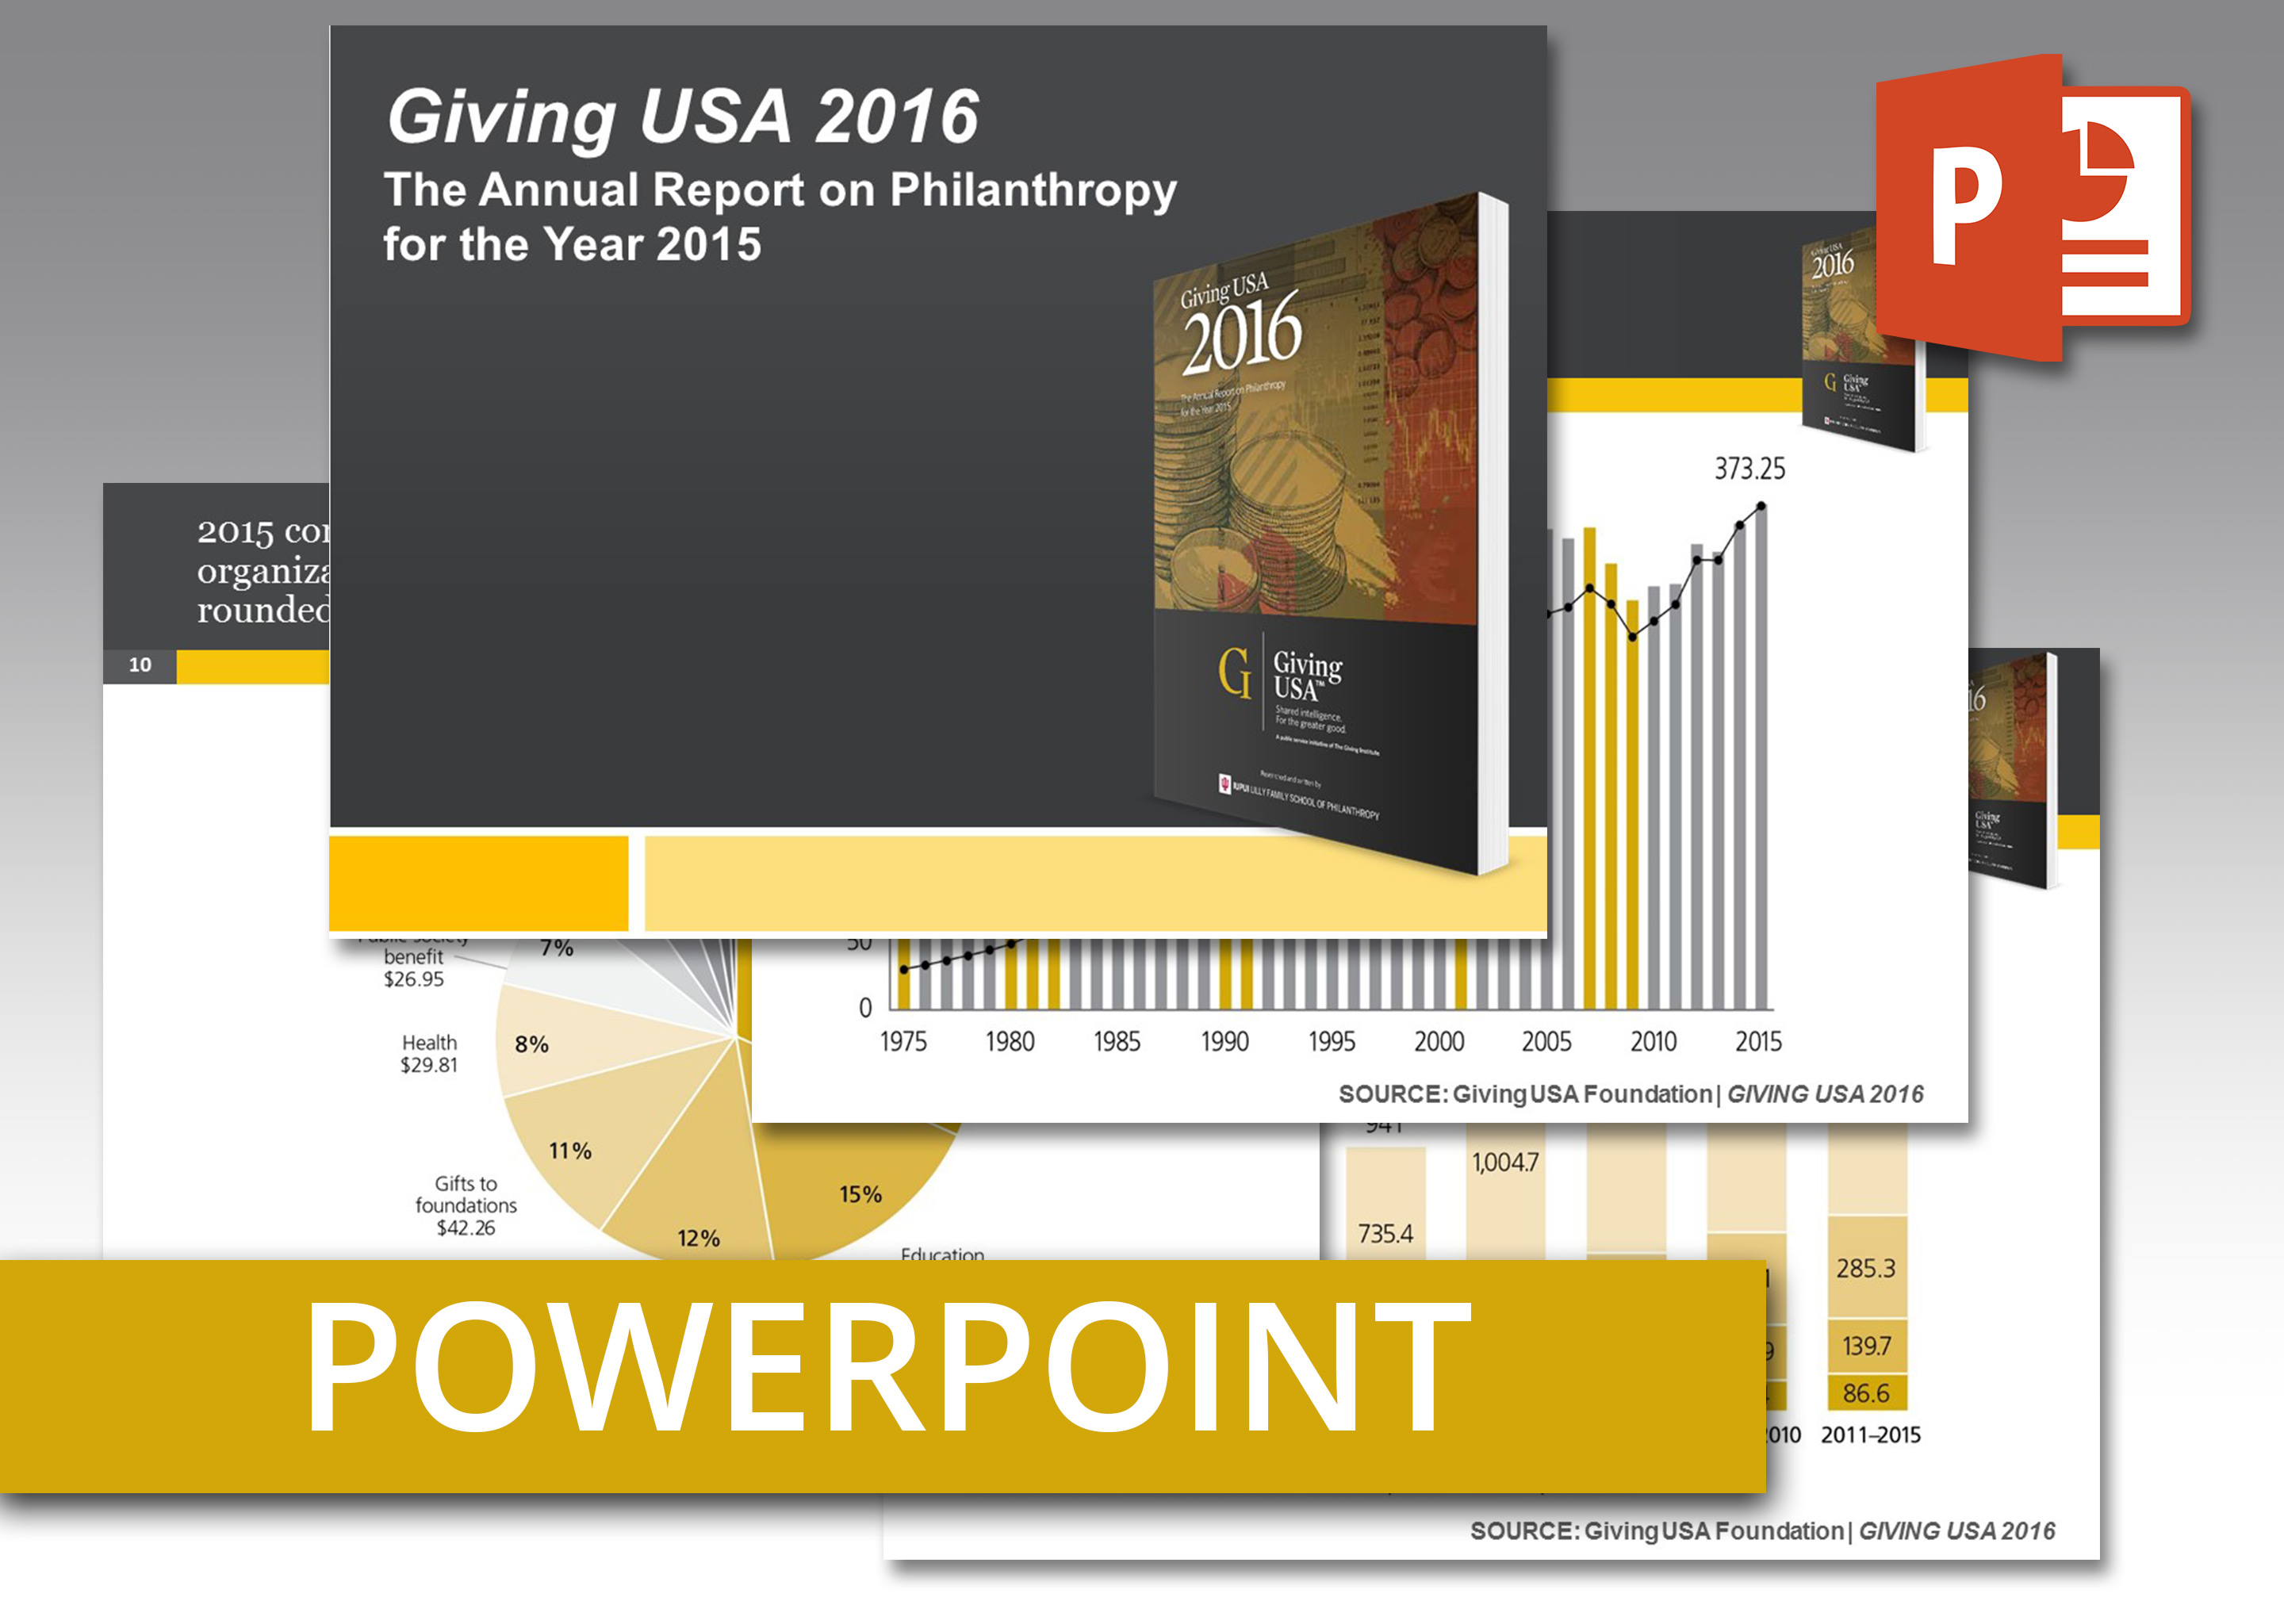 Coolmathgamesus  Personable Giving Usa  Powerpoint An Easytouse Presentation Of Report  With Marvelous Giving Usa  Powerpoint An Easytouse Presentation Of Report Findings Including Talking Points With Alluring Powerpoint Explosion Animation Also Convert Html To Powerpoint In Addition Powerpoint Digital Signage Template And Microsoft Powerpoint Has Stopped Working  As Well As American Culture Powerpoint Additionally Creative Powerpoint Template From Givingusaorg With Coolmathgamesus  Marvelous Giving Usa  Powerpoint An Easytouse Presentation Of Report  With Alluring Giving Usa  Powerpoint An Easytouse Presentation Of Report Findings Including Talking Points And Personable Powerpoint Explosion Animation Also Convert Html To Powerpoint In Addition Powerpoint Digital Signage Template From Givingusaorg